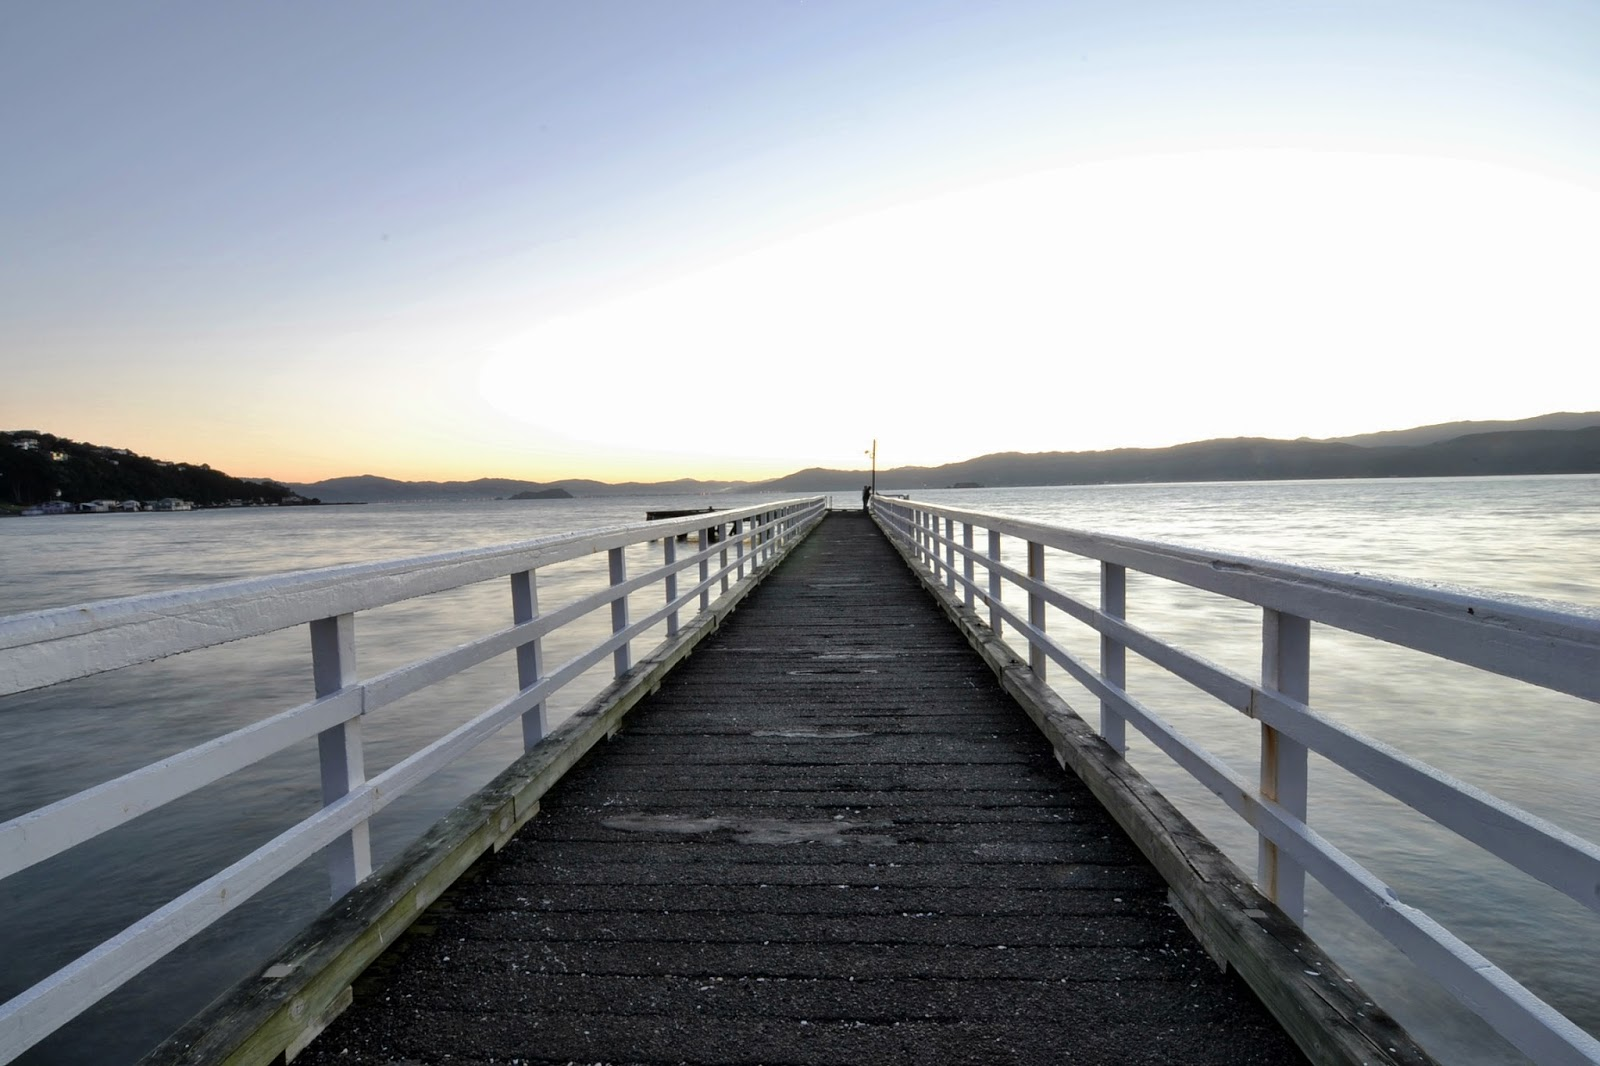 Seatoun Pier at dawn